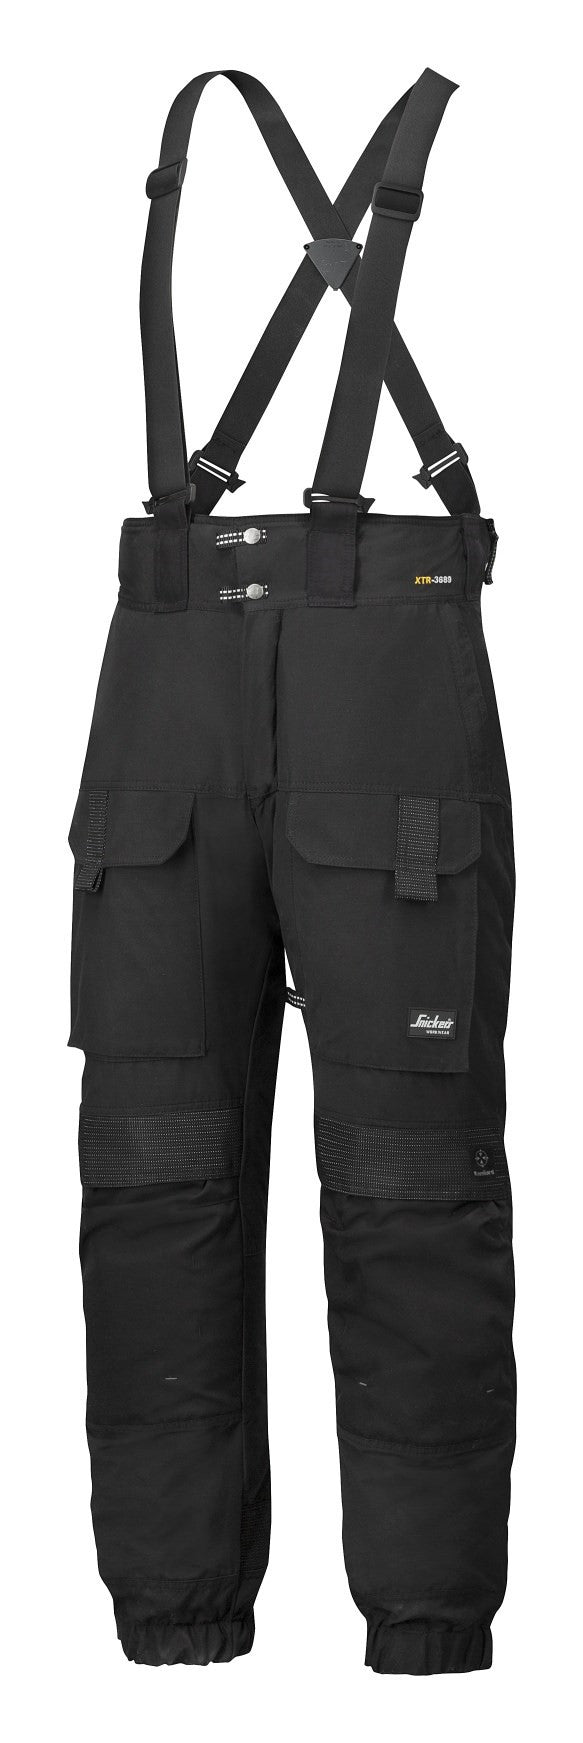 3689-xtr-arctic-winter-trousers - Snickers Werkkledij